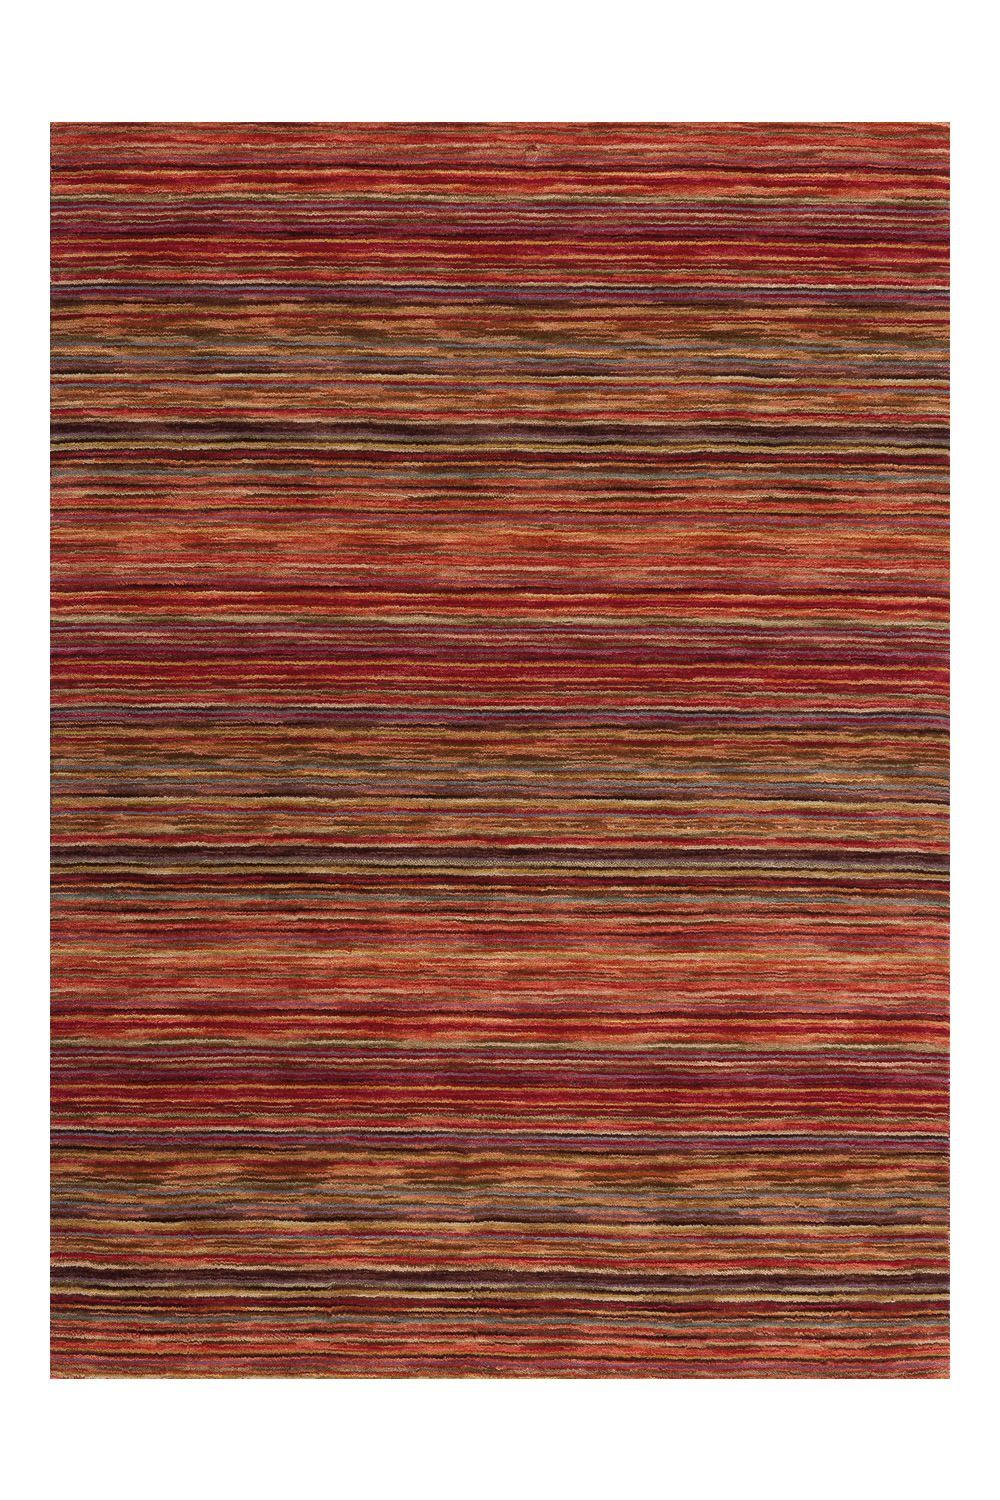 Hand-woven rug in red colour